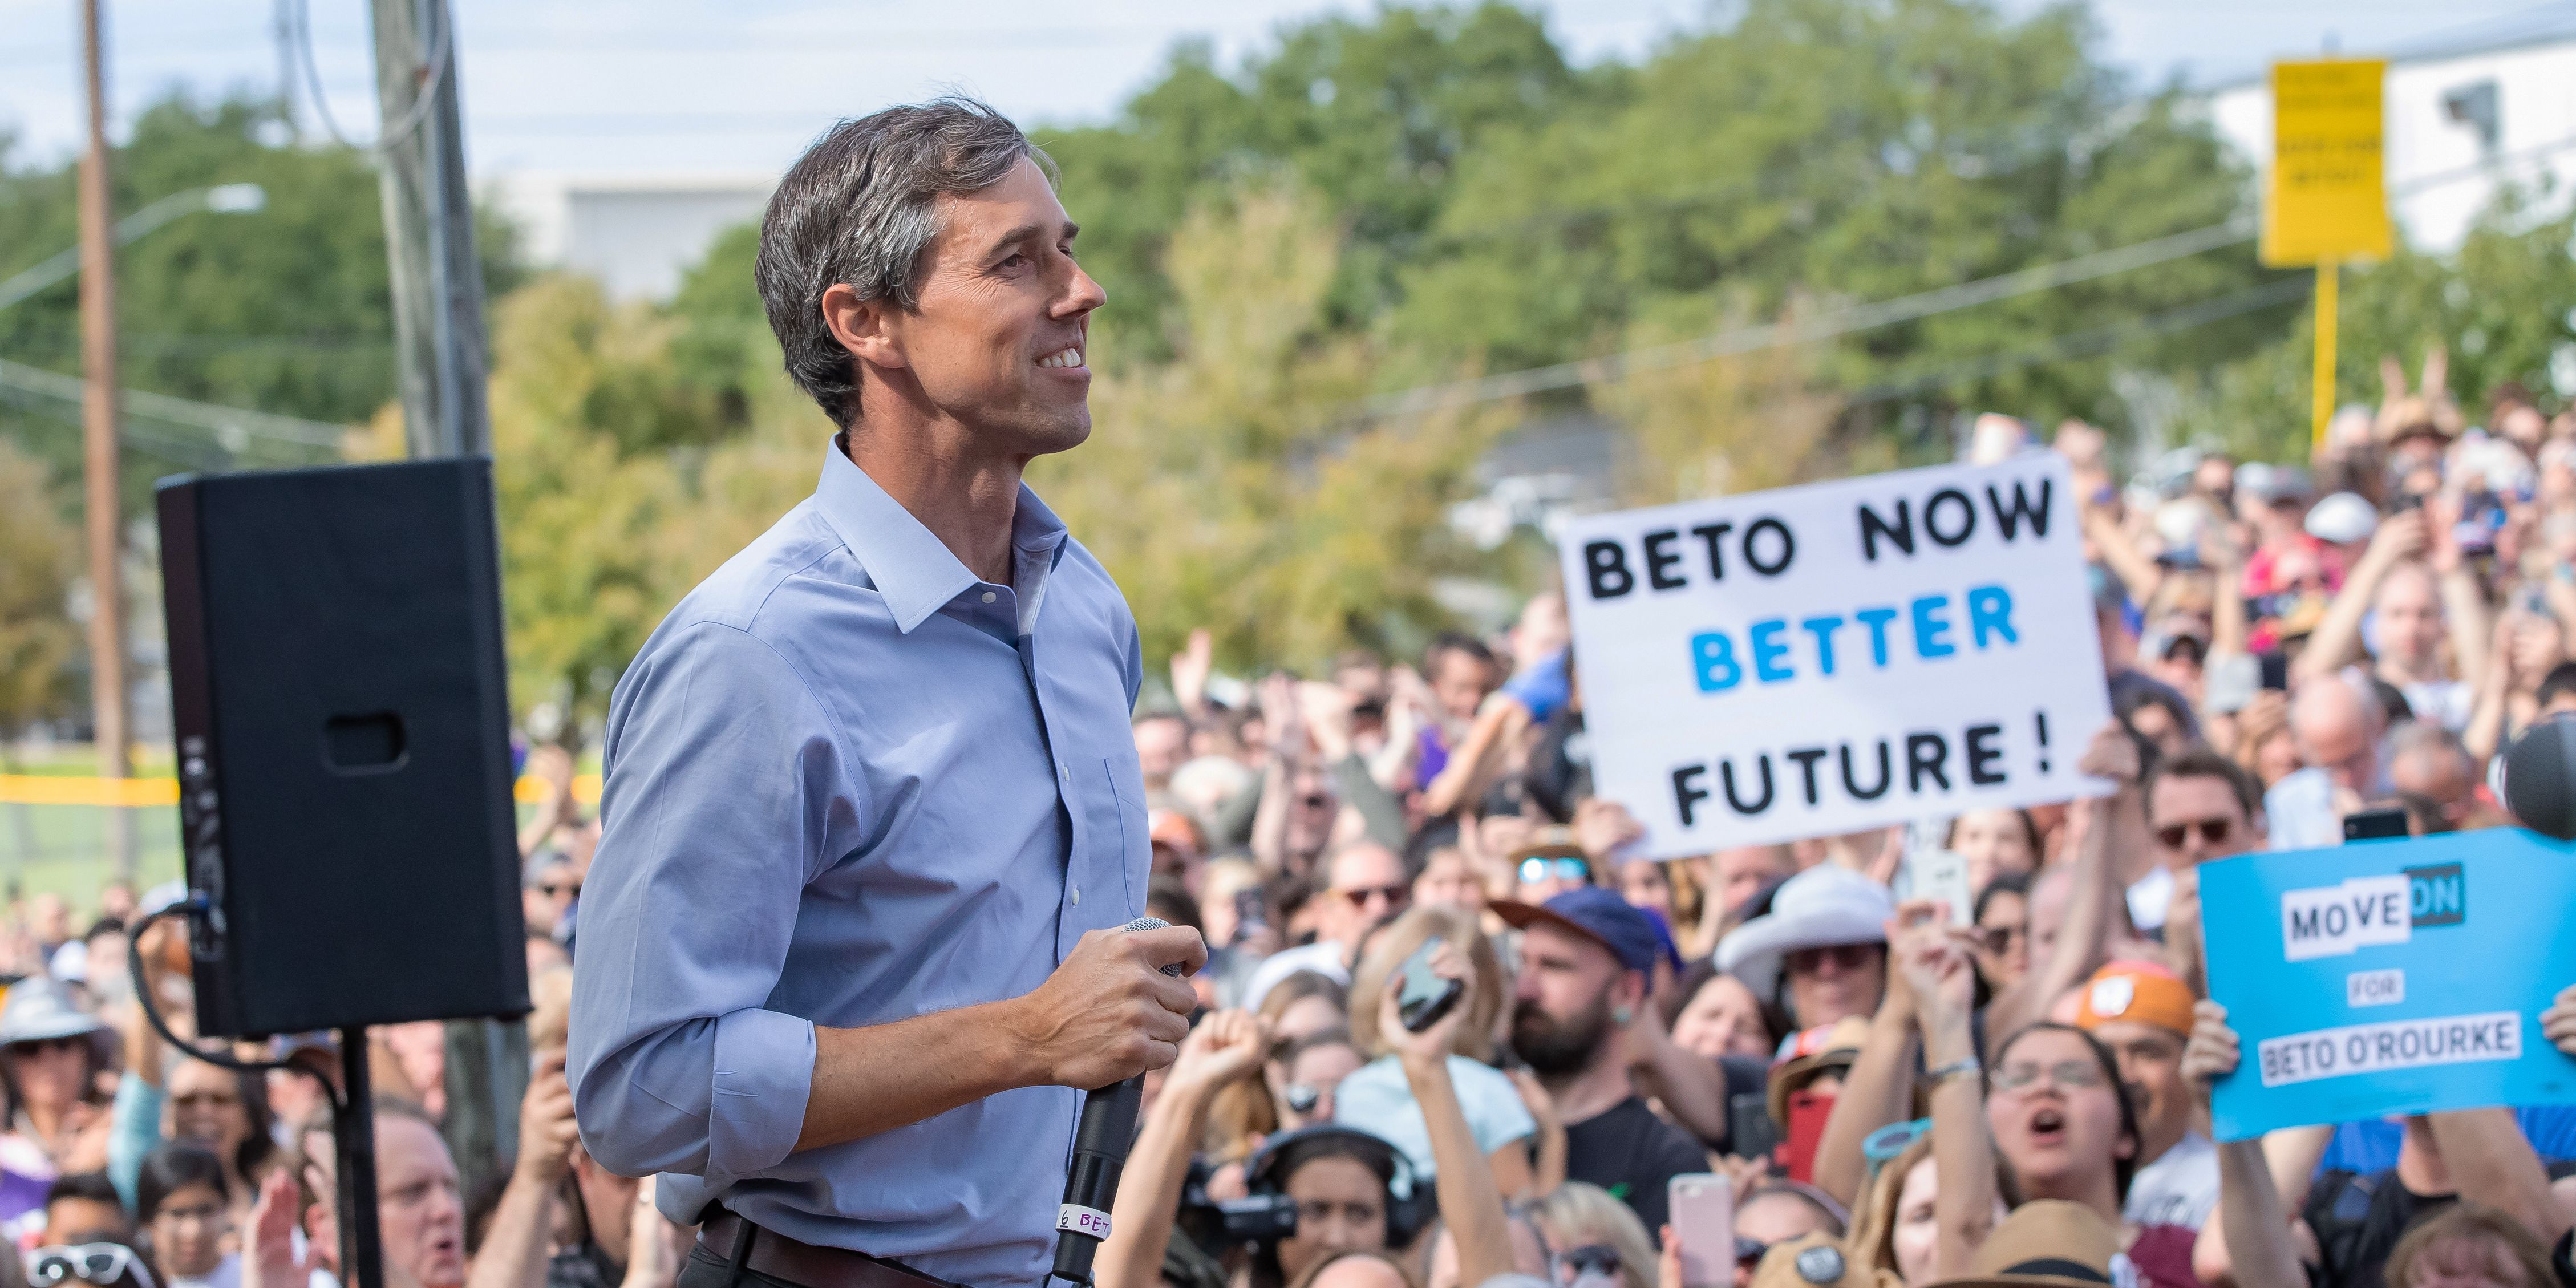 Everything You Need to Know About Beto O'Rourke, the Congressman Who May Be Eyeing the Presidency